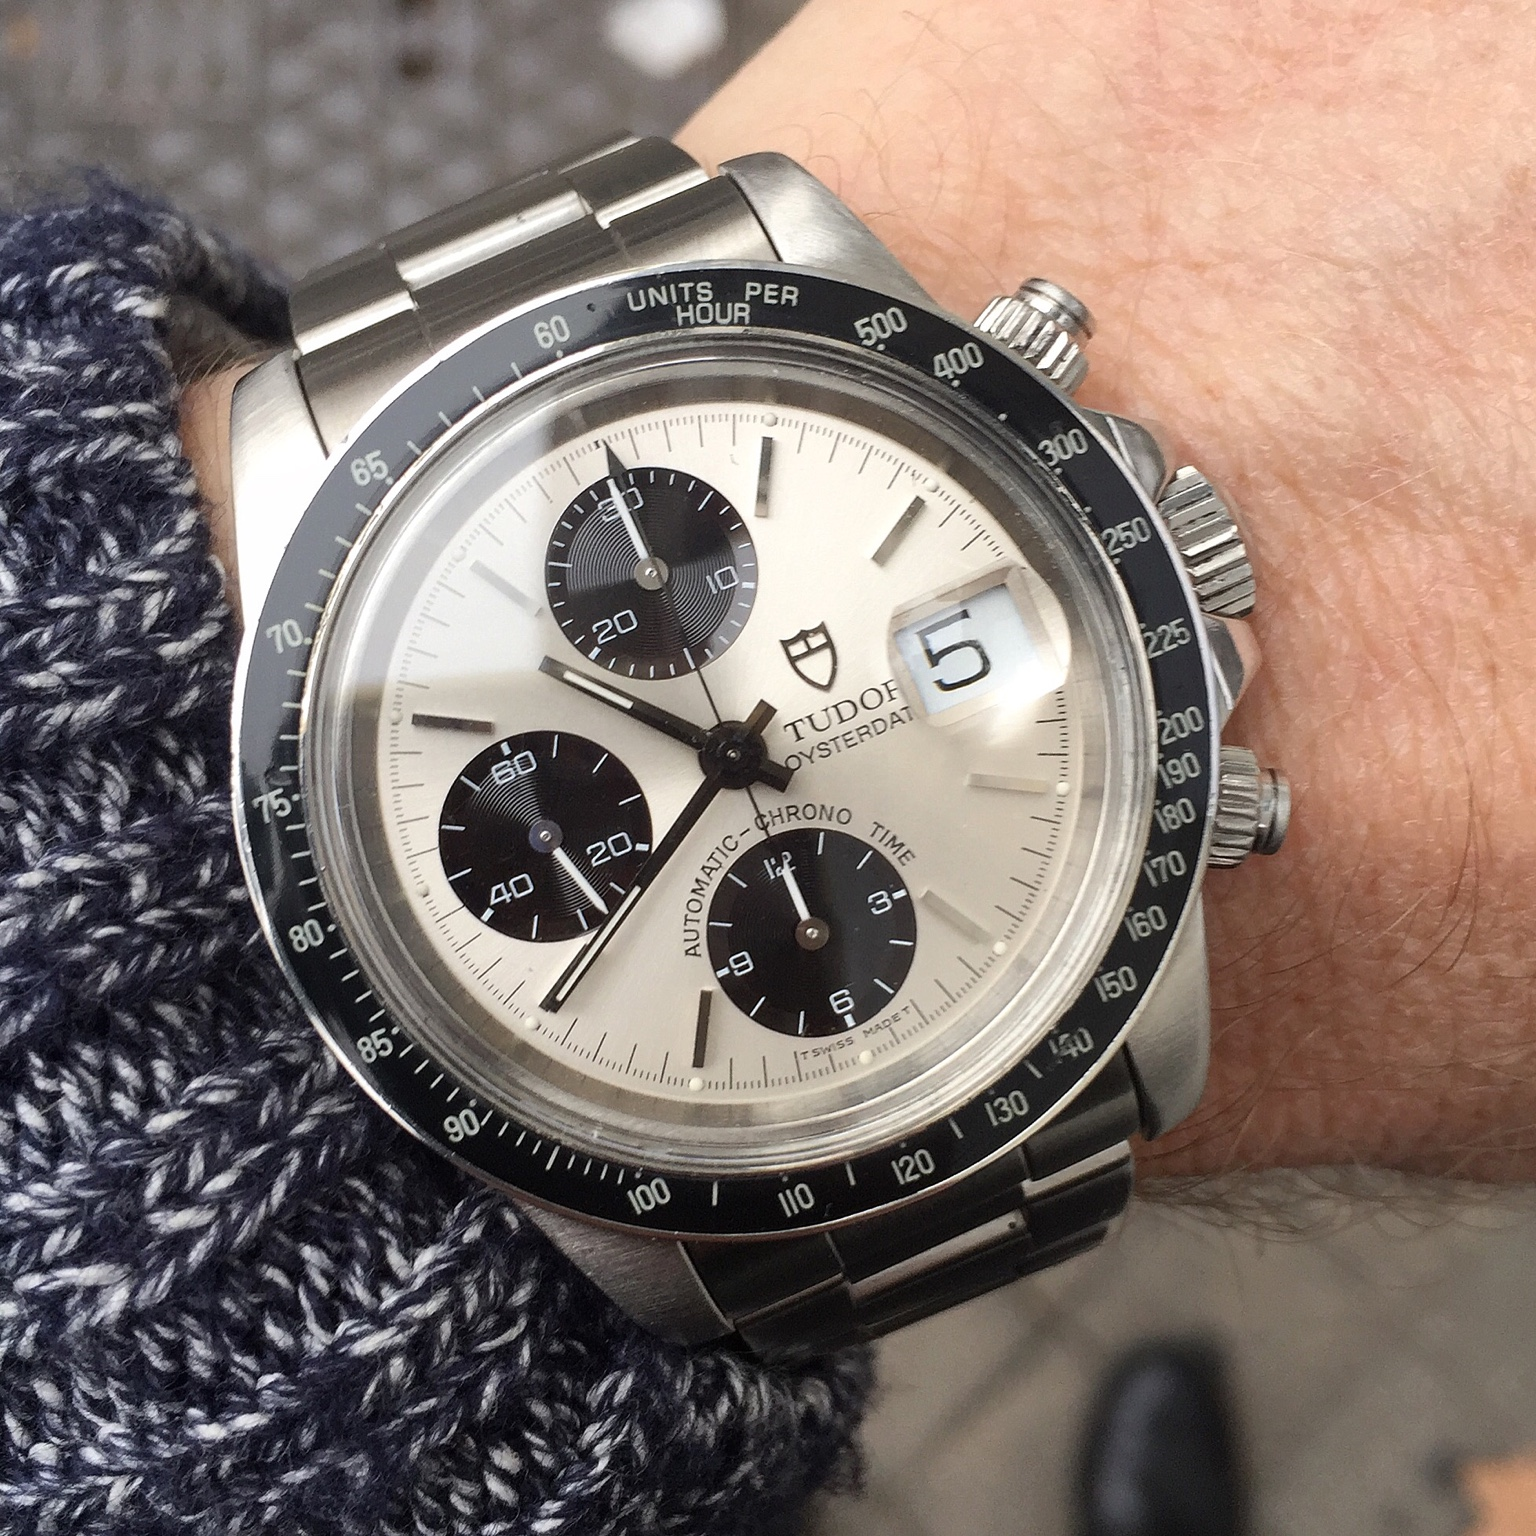 9ed3eb76f I blame Dan Pierce.... - Rolex Forums - Rolex Watch Forum